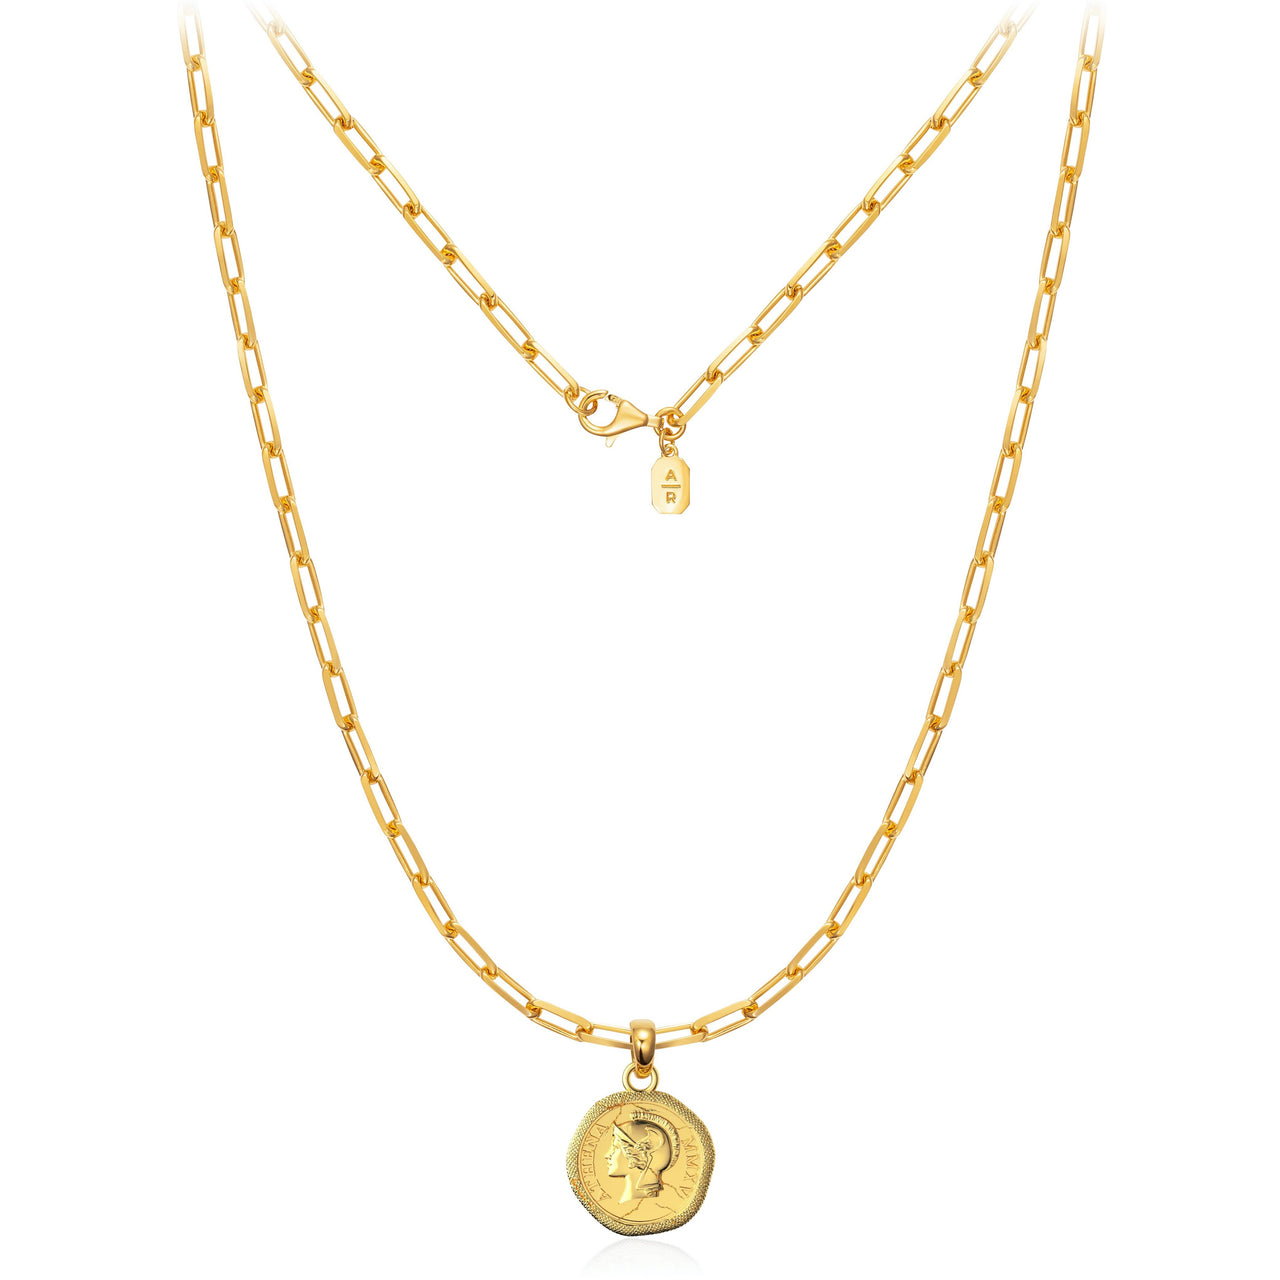 The Athena Coin Necklace